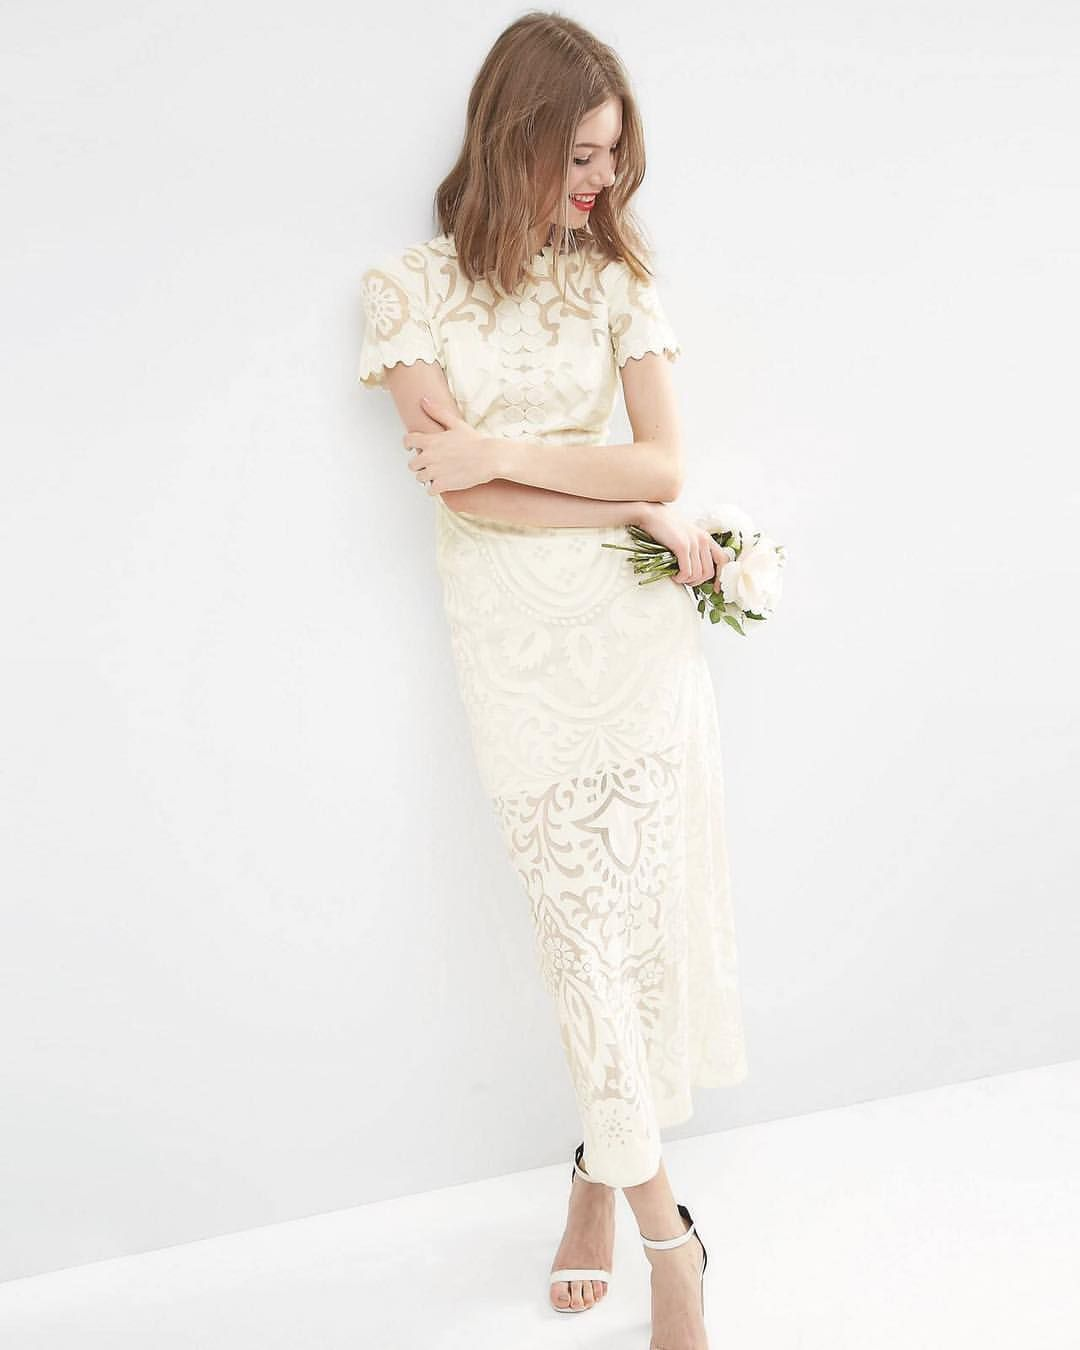 The perfect ASOS wedding dress for a stylish city wedding The